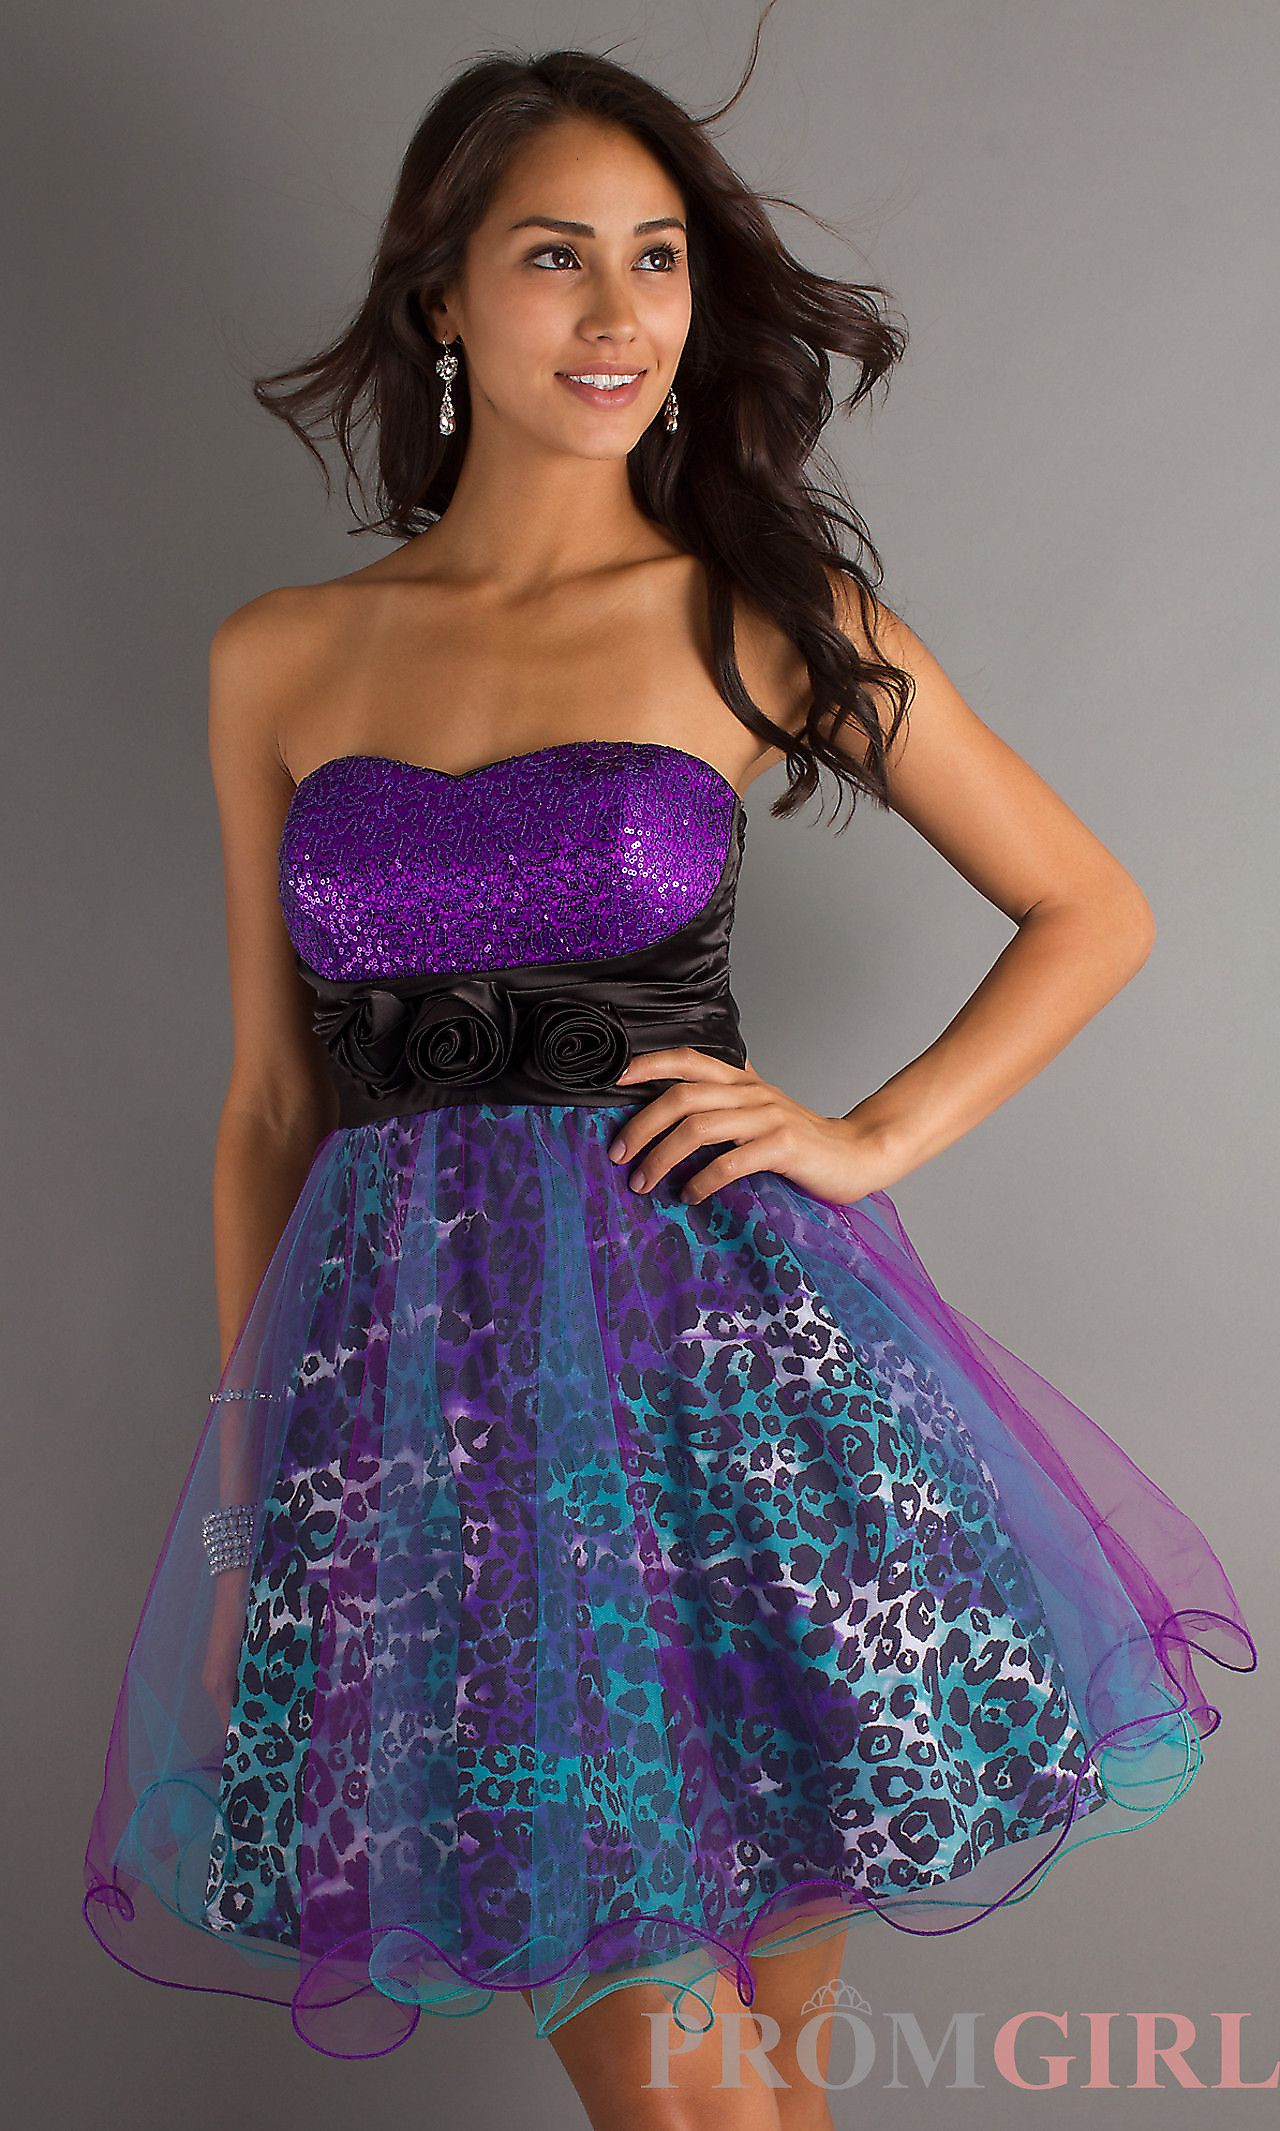 I feel like if Lisa Frank made a prom dress, this would be it, haha ...